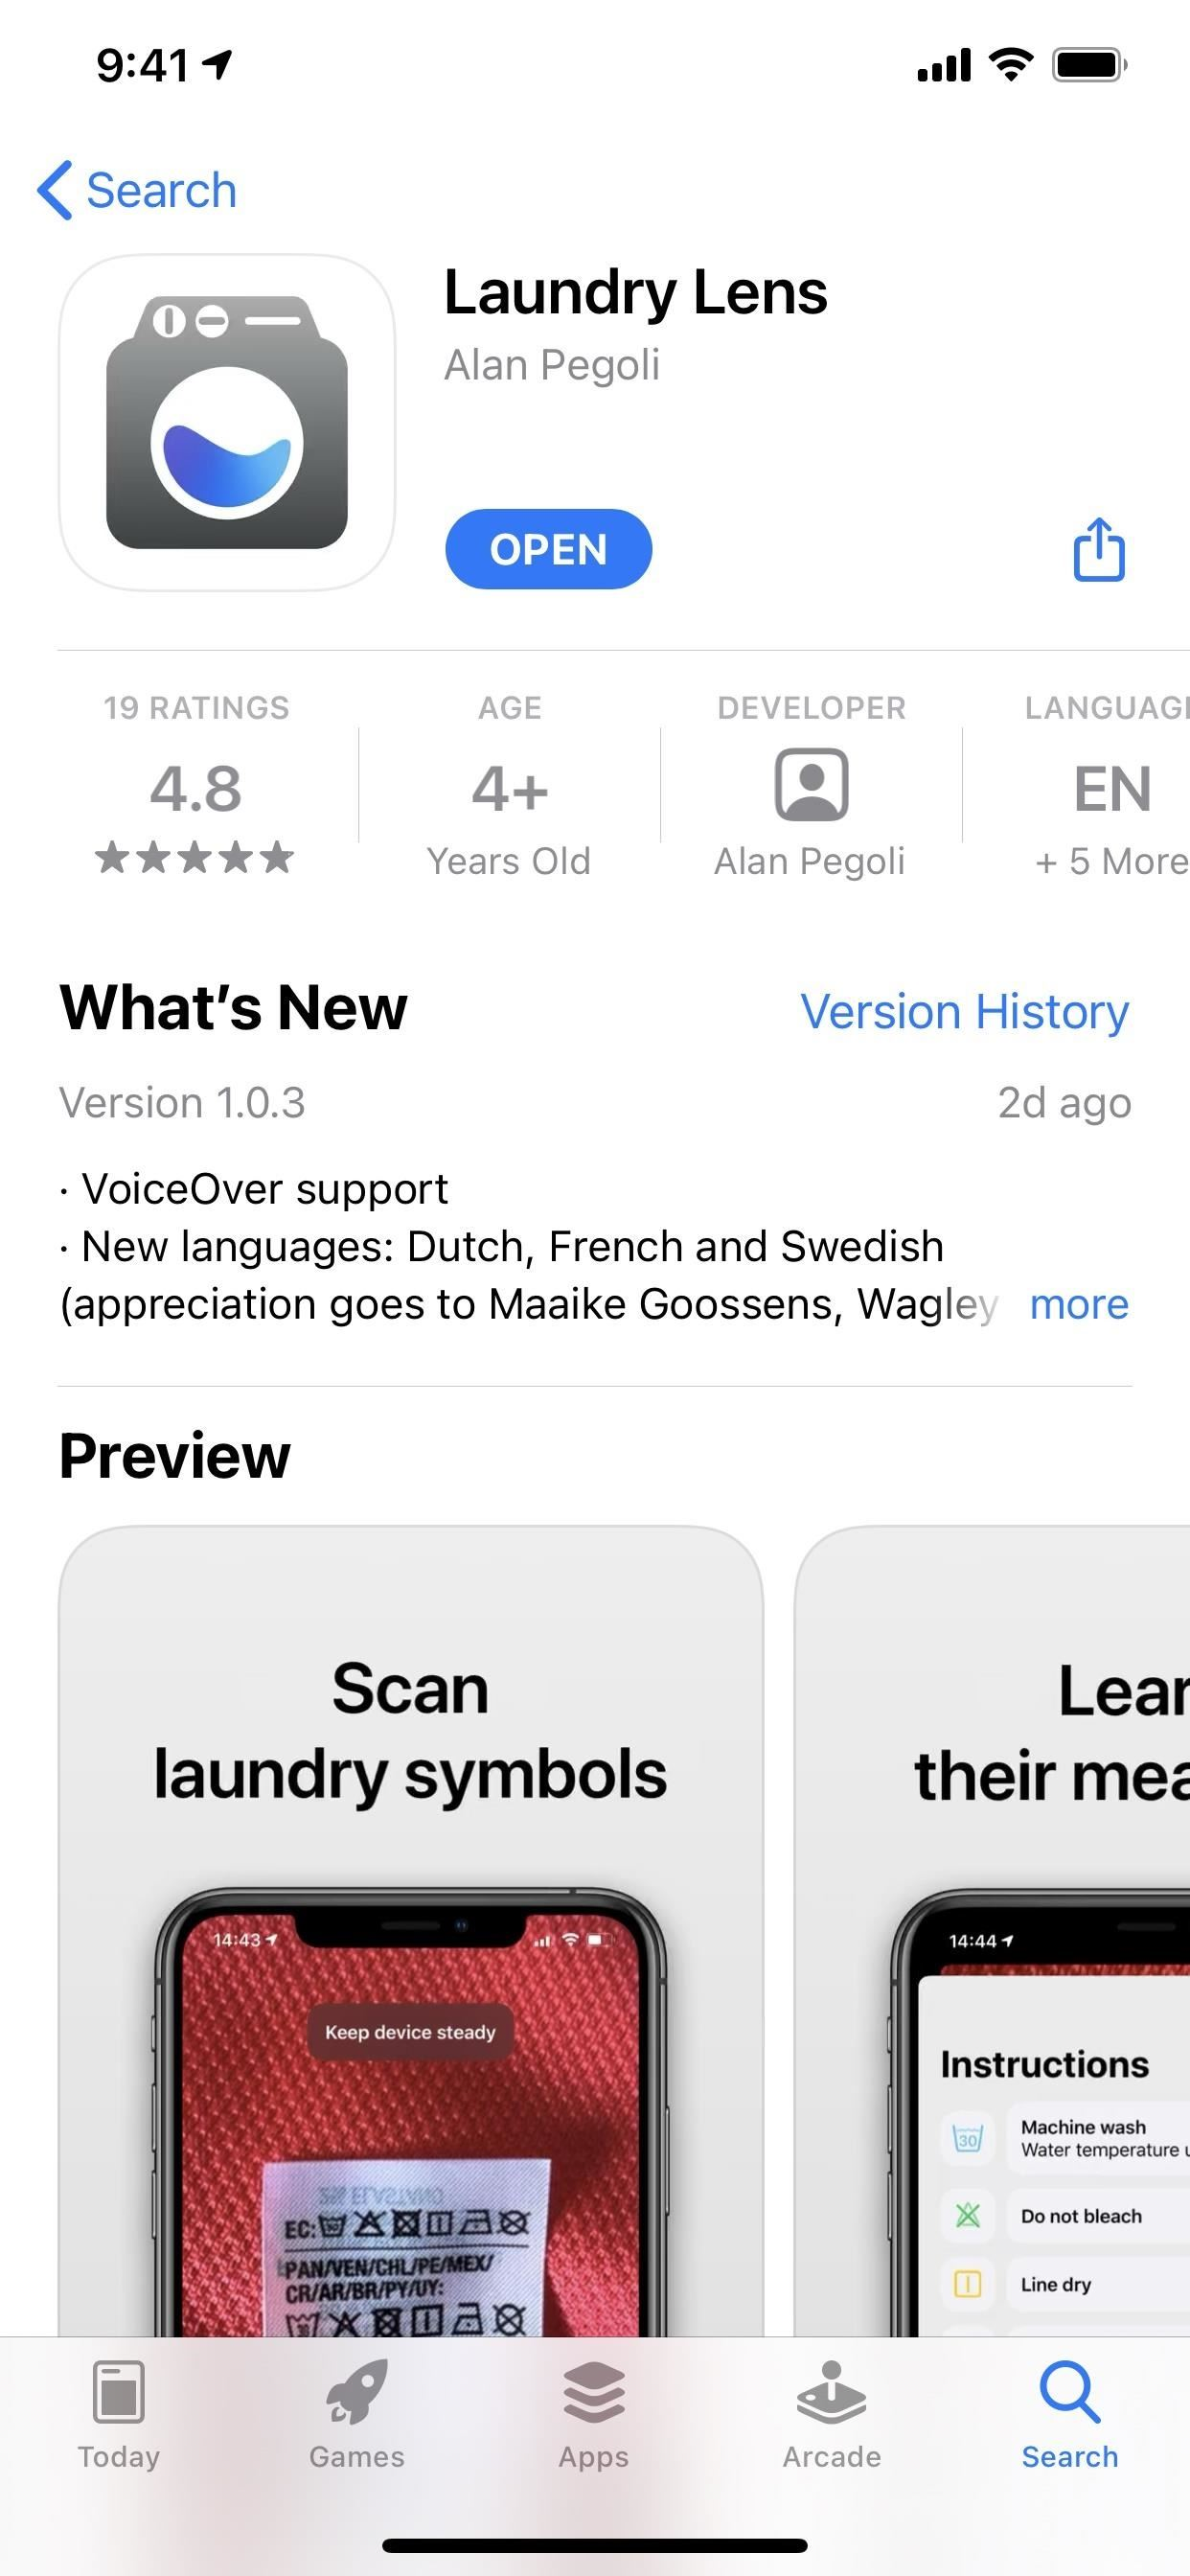 Scan Laundry Care Symbols with Your iPhone to See How You're Actually Supposed to Wash Clothes